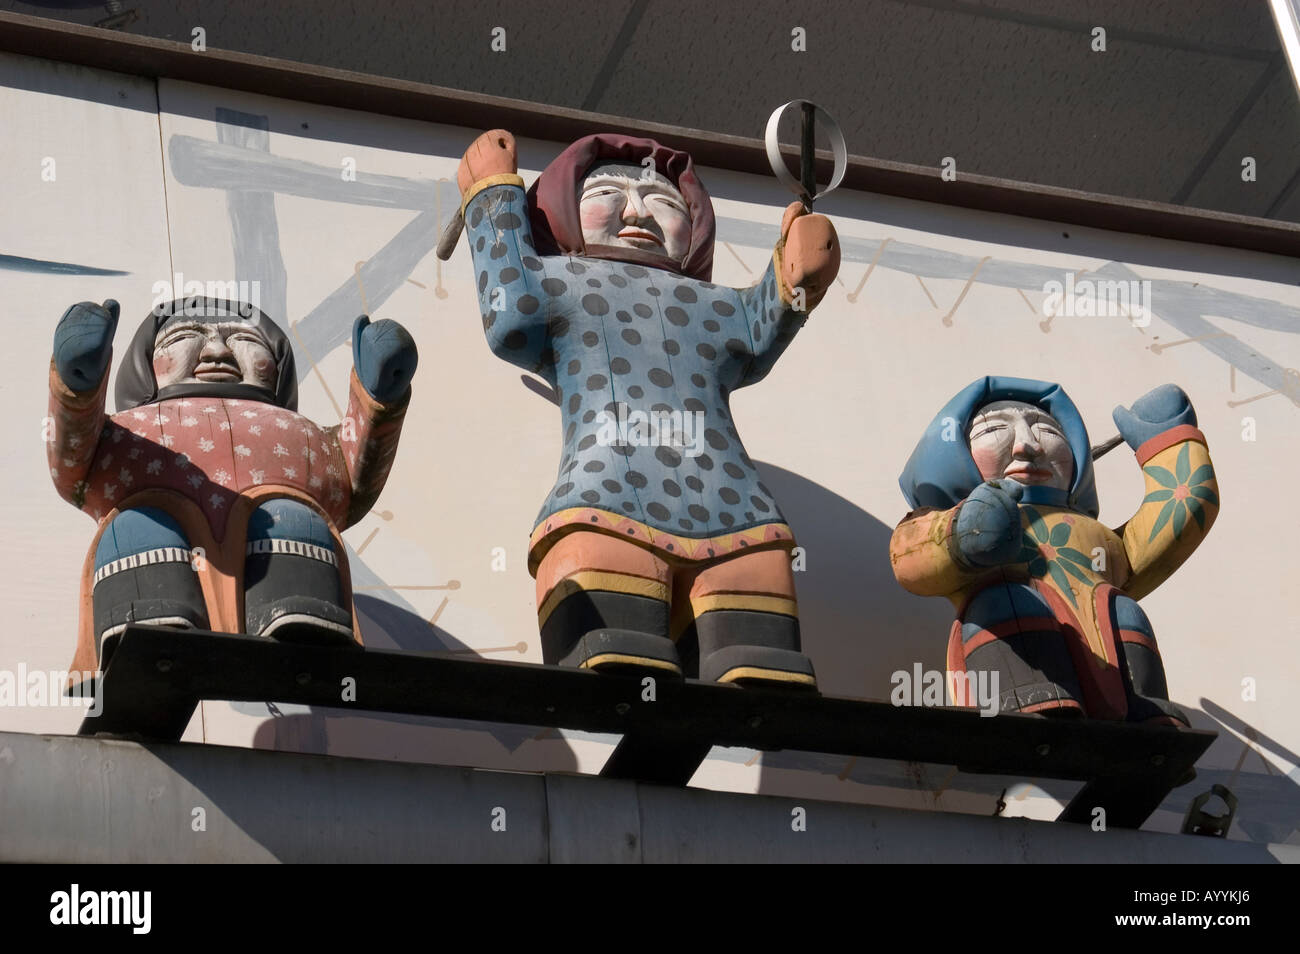 Carvings of Alaskan Natives advertising gift shop Anchorage Alaska No property release - Stock Image